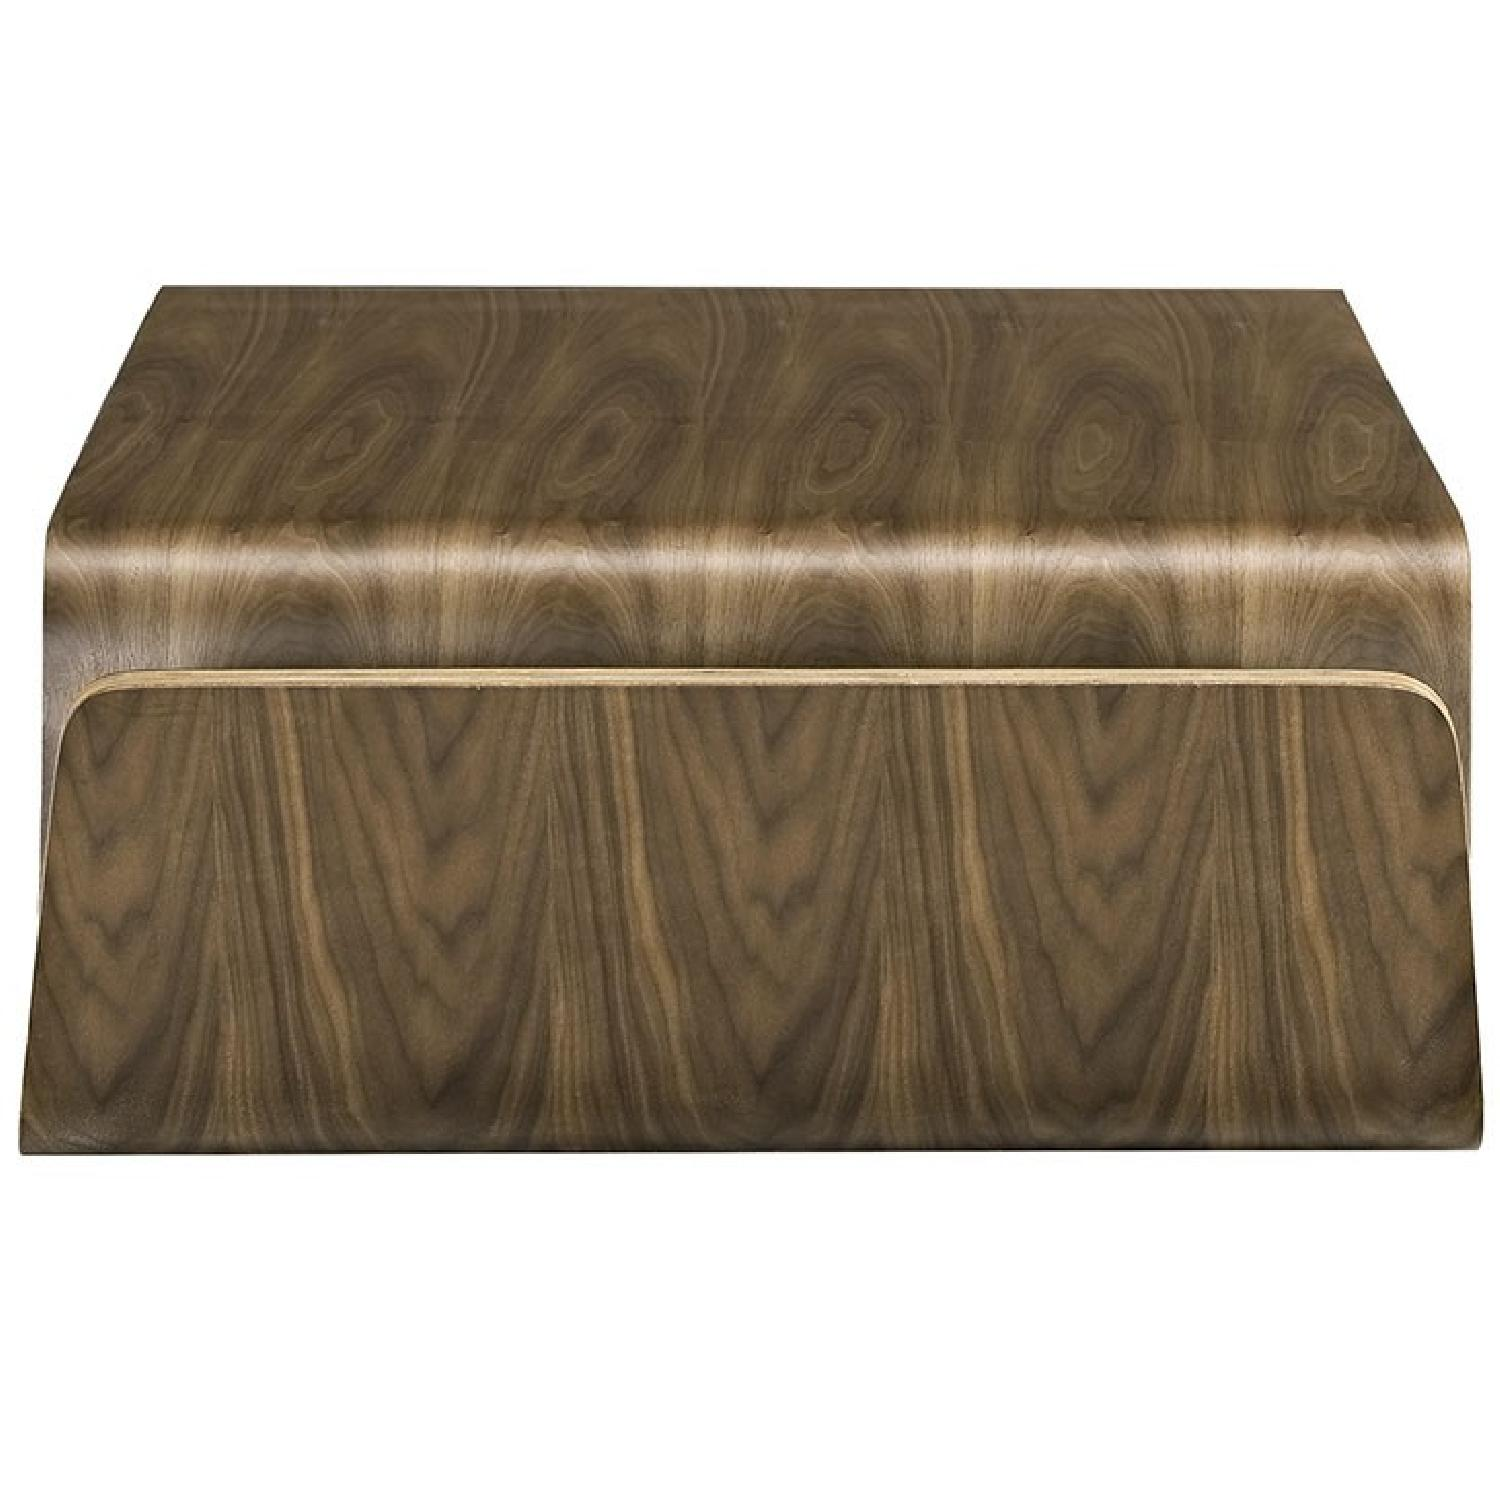 Manhattan Home Design Wood Coffee Table in Walnut-0